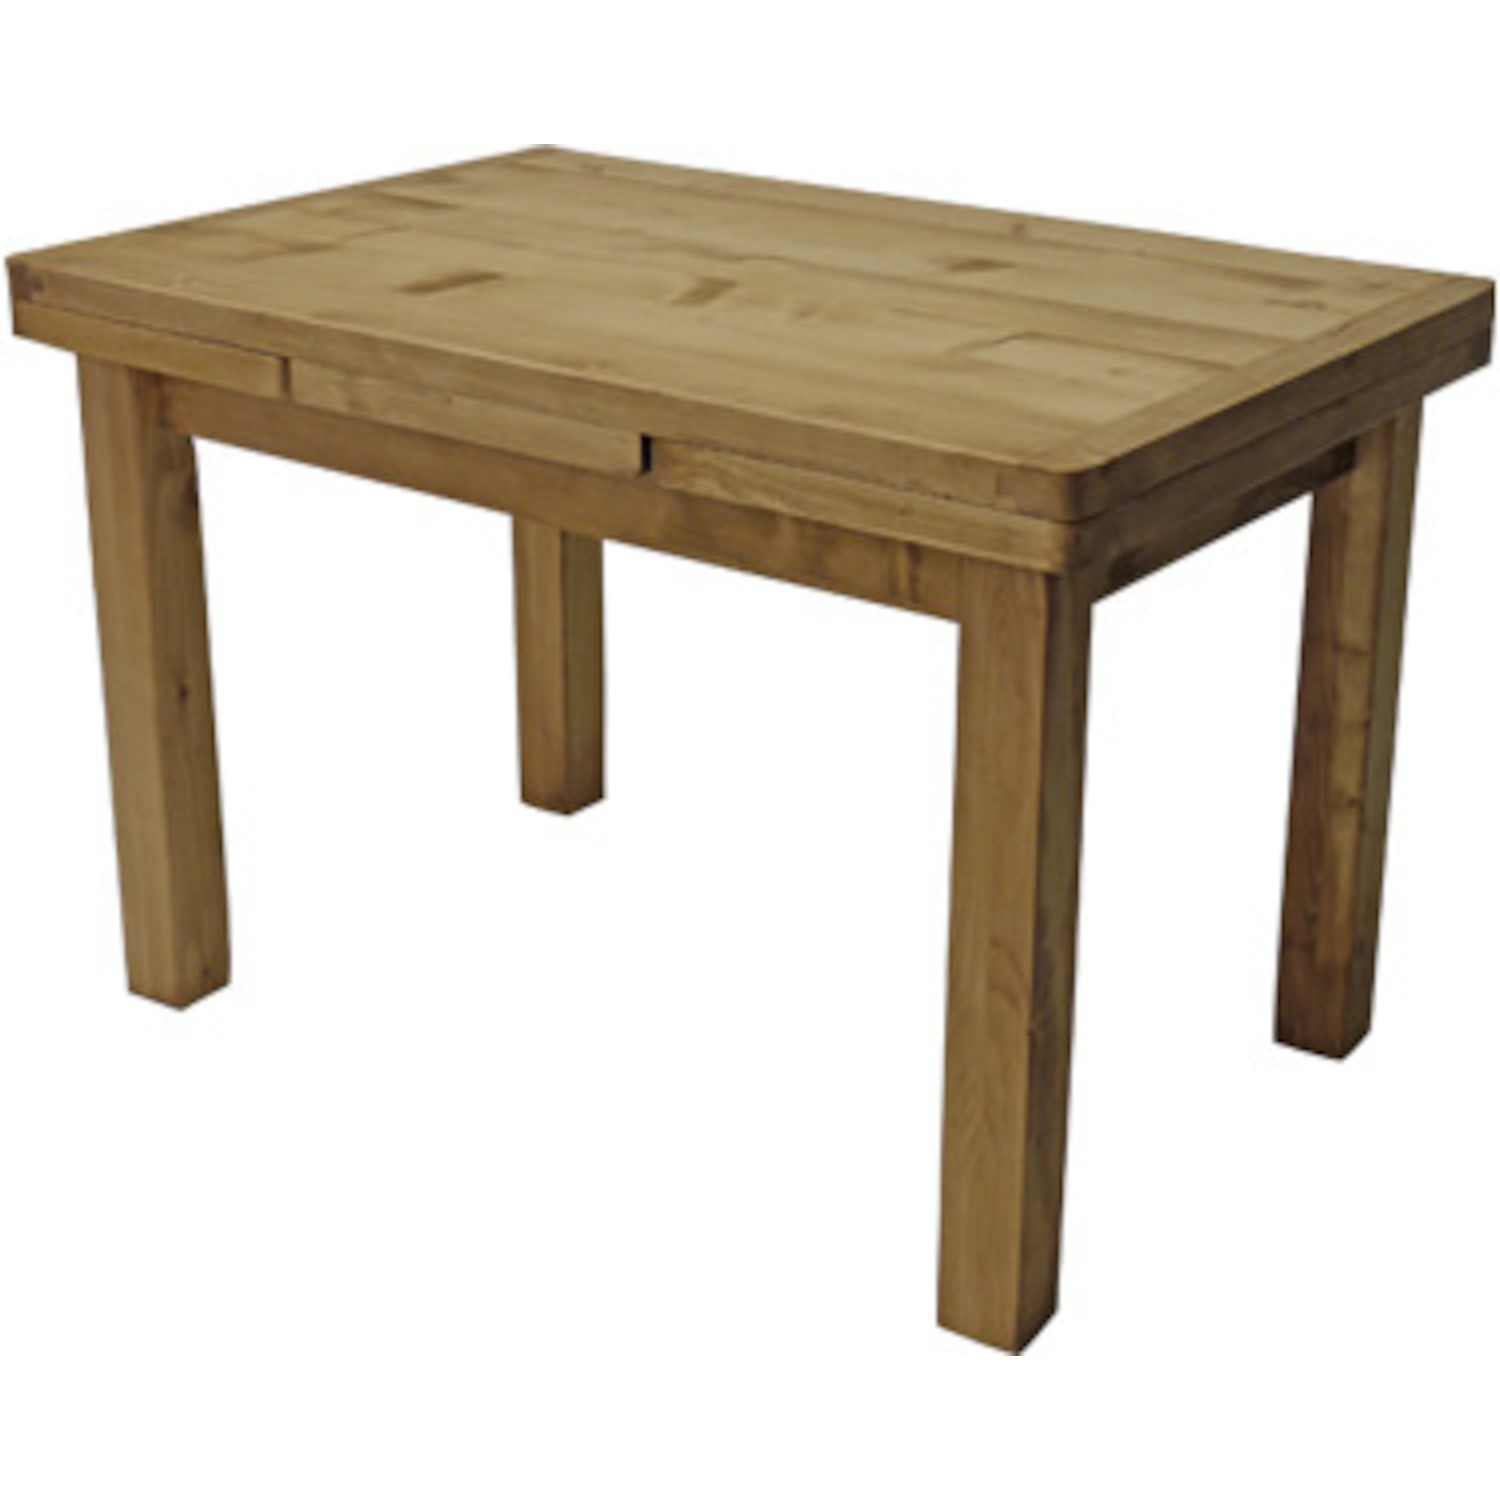 Table avec 2 allonges l italienne for Table 120x80